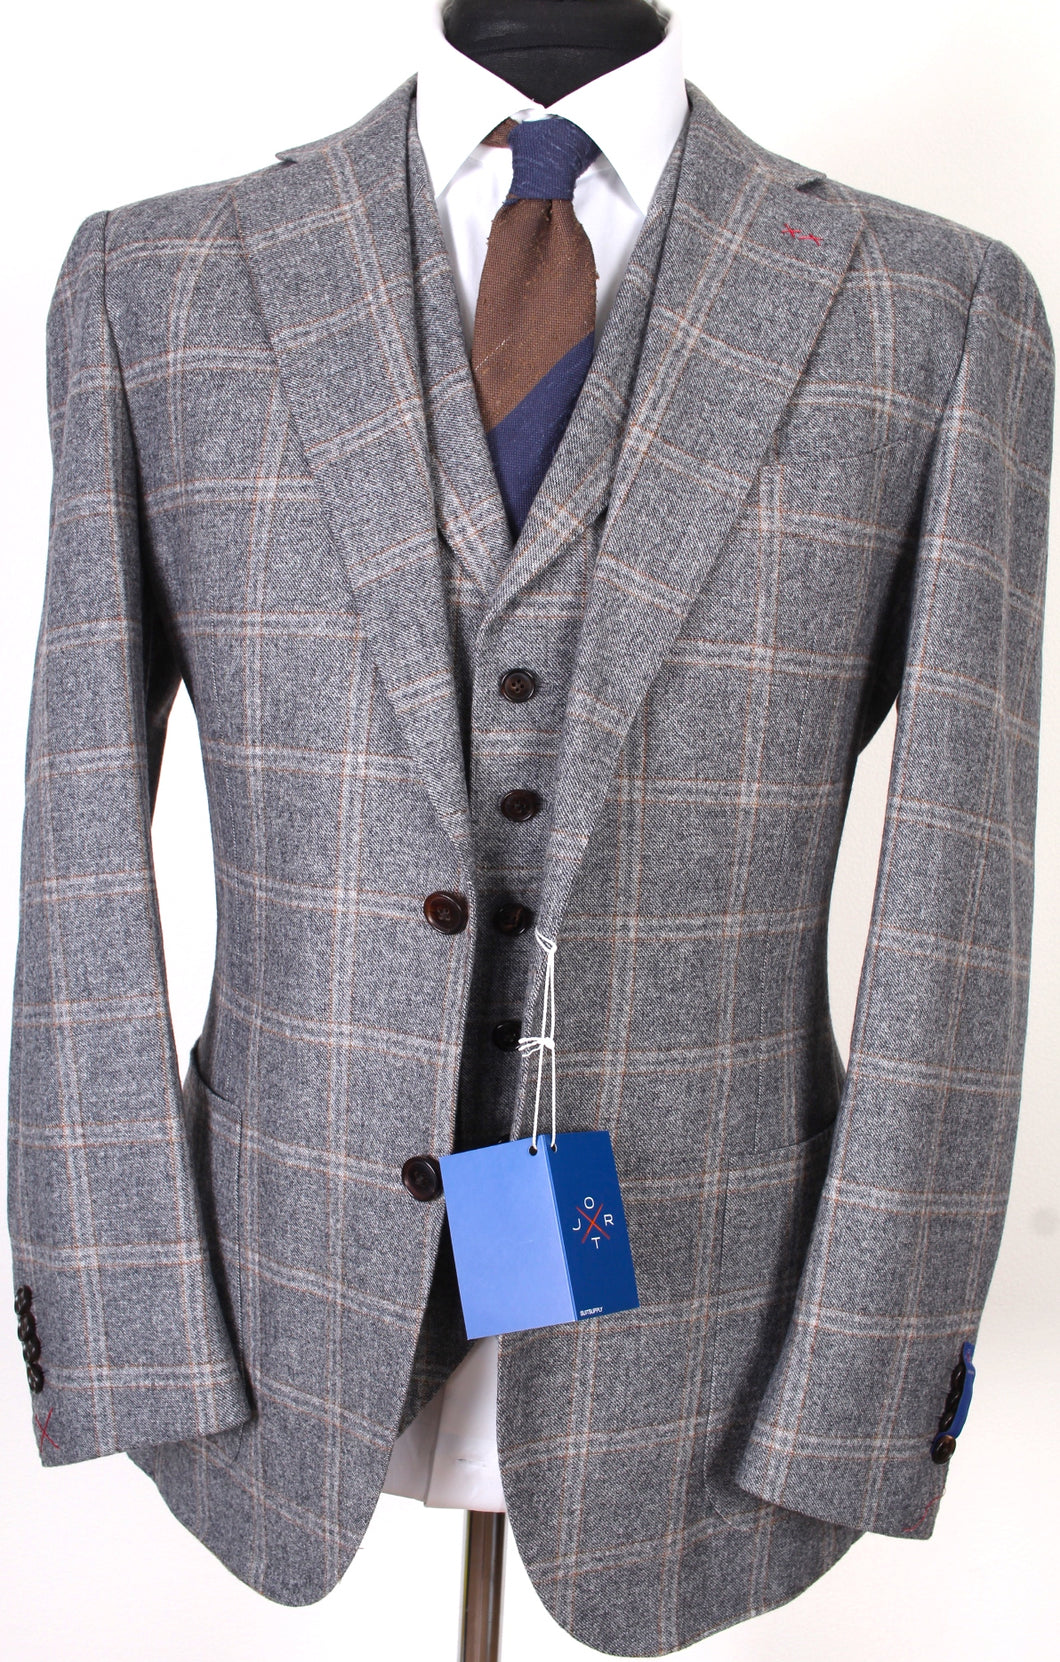 New Suitsupply JORT Gray Check 100% Wool Super 130s 3 Piece Suit - Size 42R (FINAL SALE)